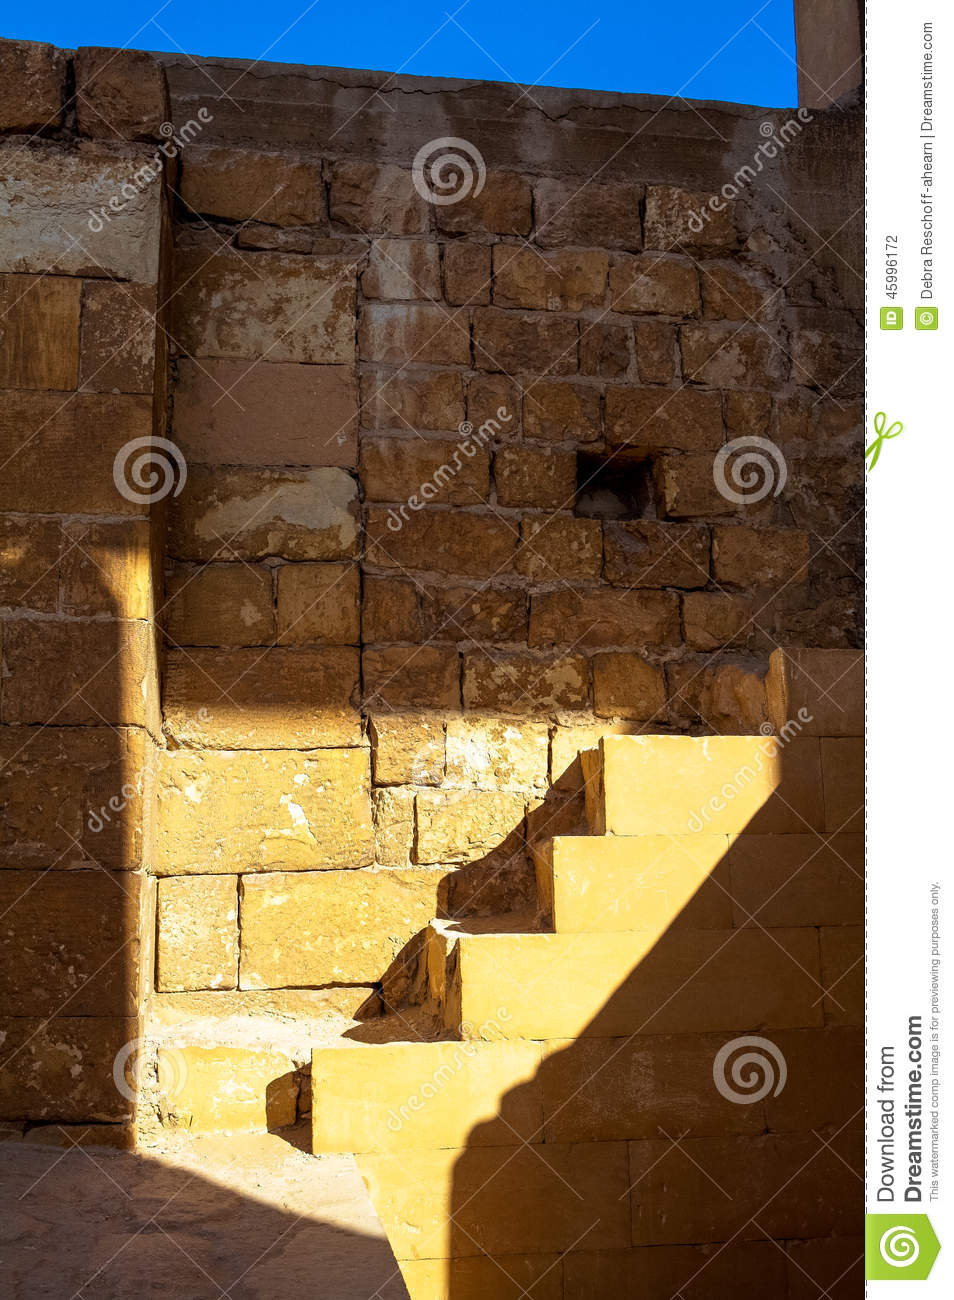 Egyptian stairs in light stock photo. Image of architecture - 45996172